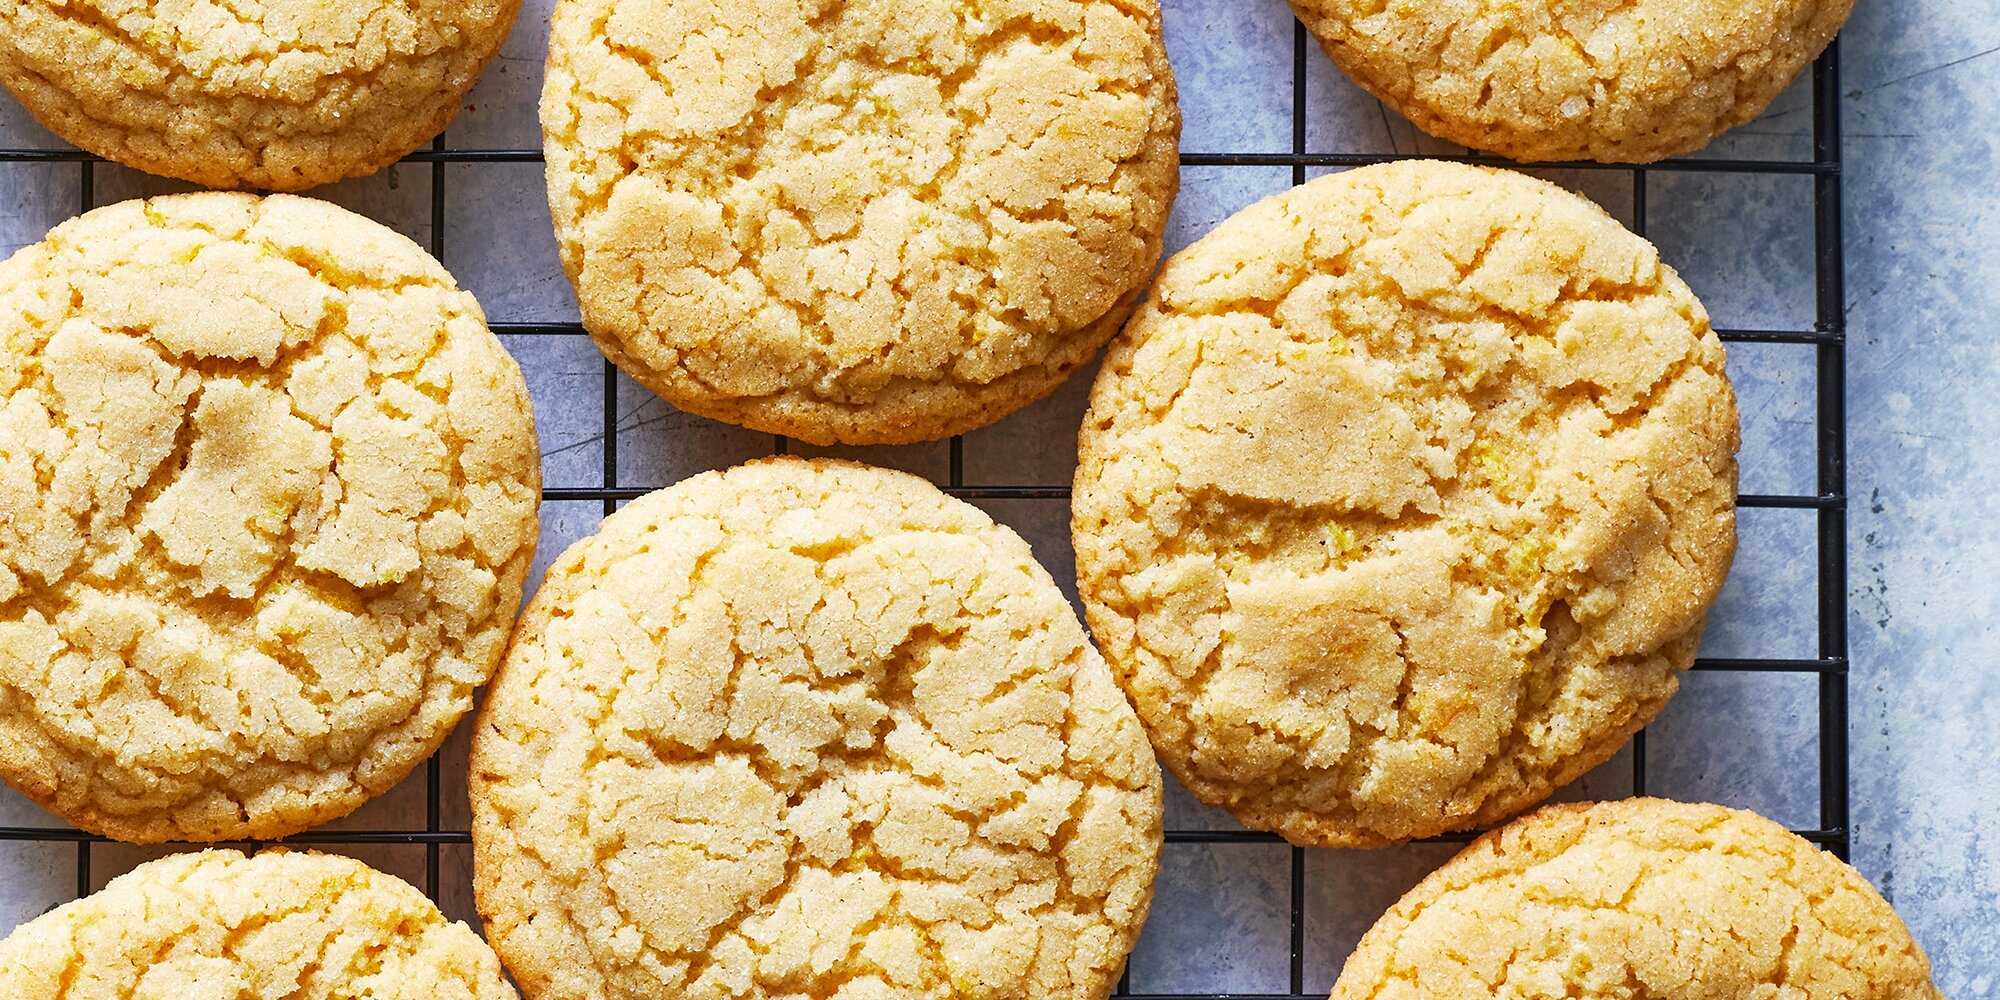 11 Healthy Lemon Cookies for a Bright and Citrusy Treat